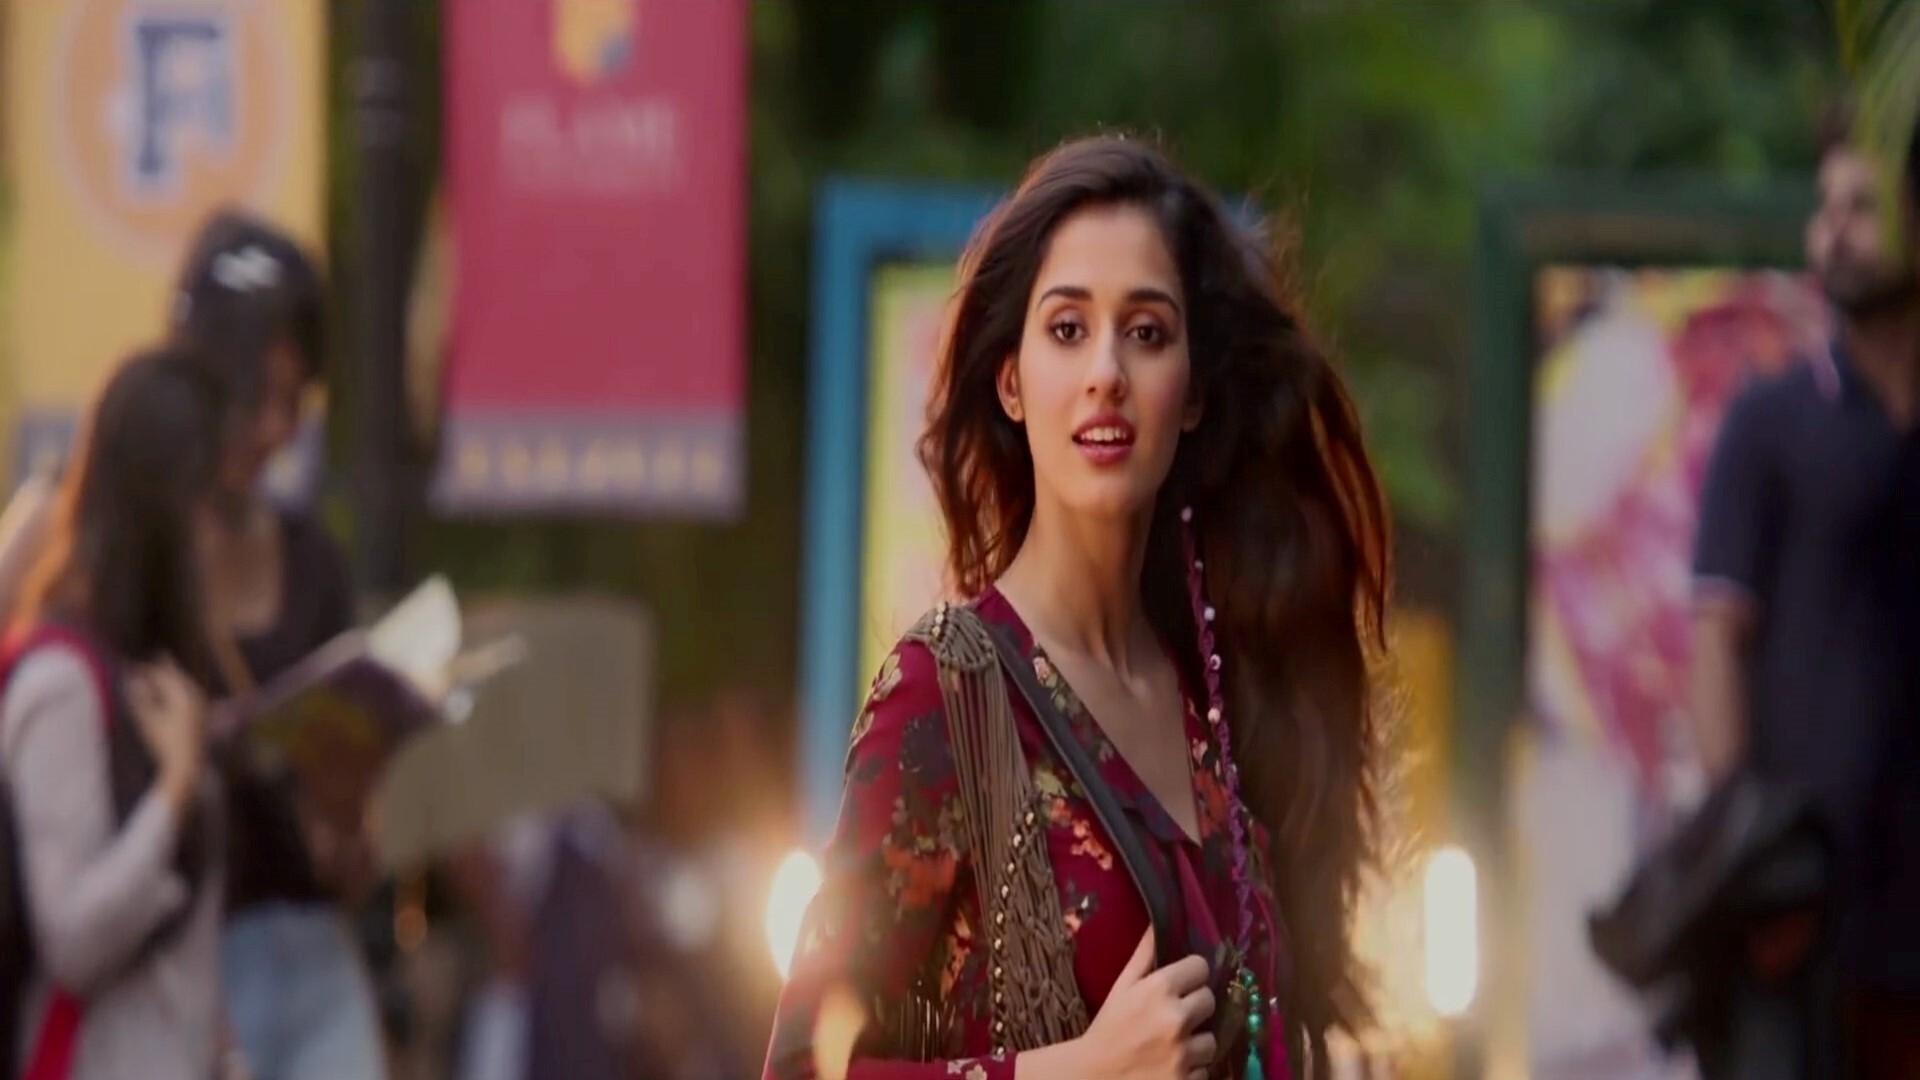 baaghi 2 wallpaper full hd download